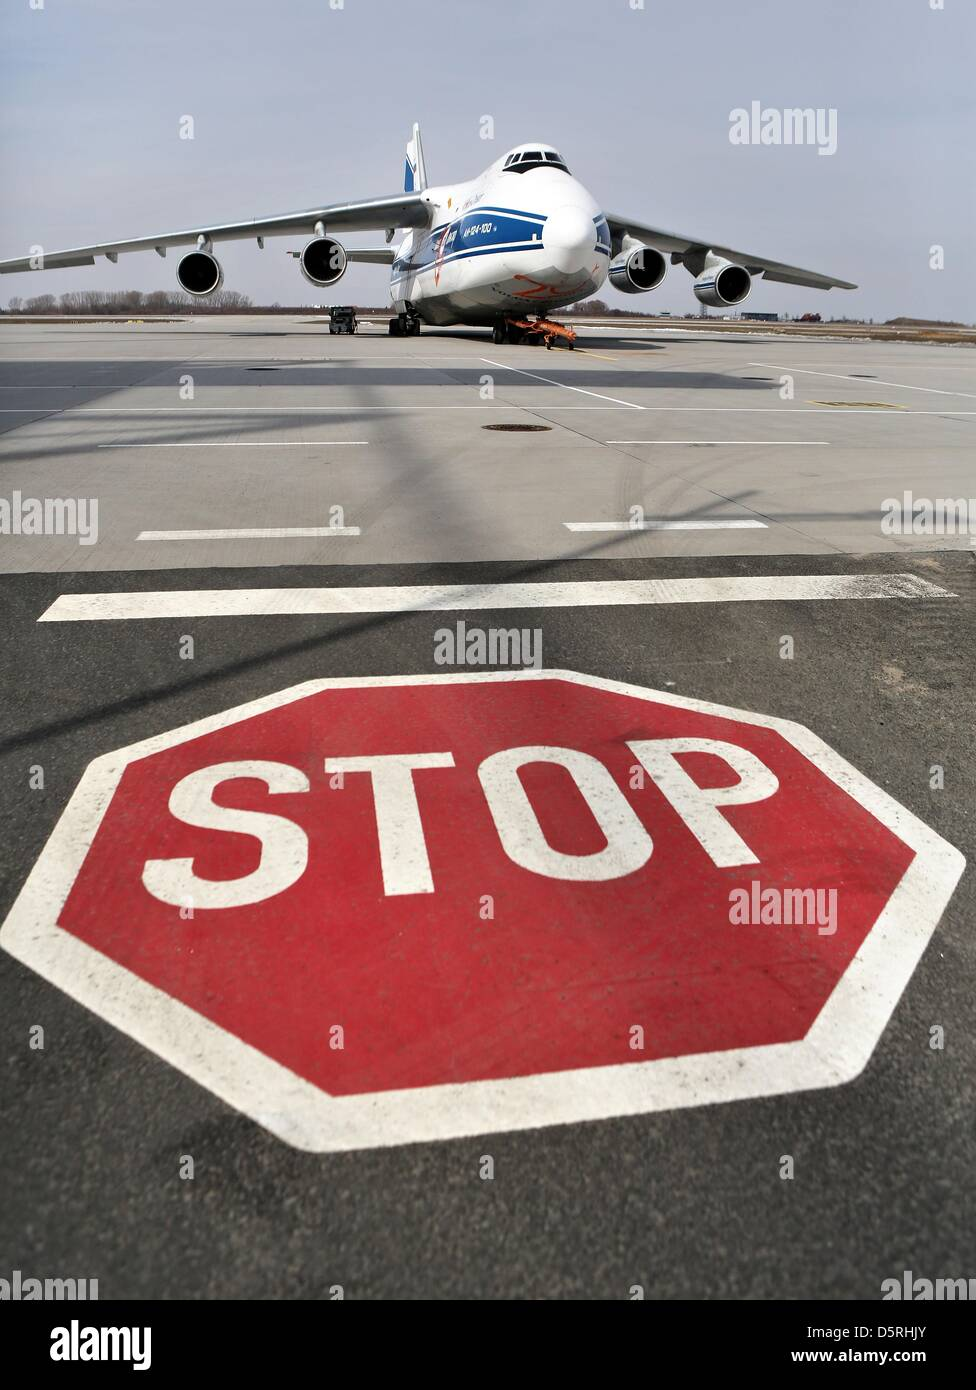 An Antonov An-124 is parked behind a stop sign at Leipzig/Halle Airport in Schkeuditz, Germany, 08 April 2013. The Stock Photo